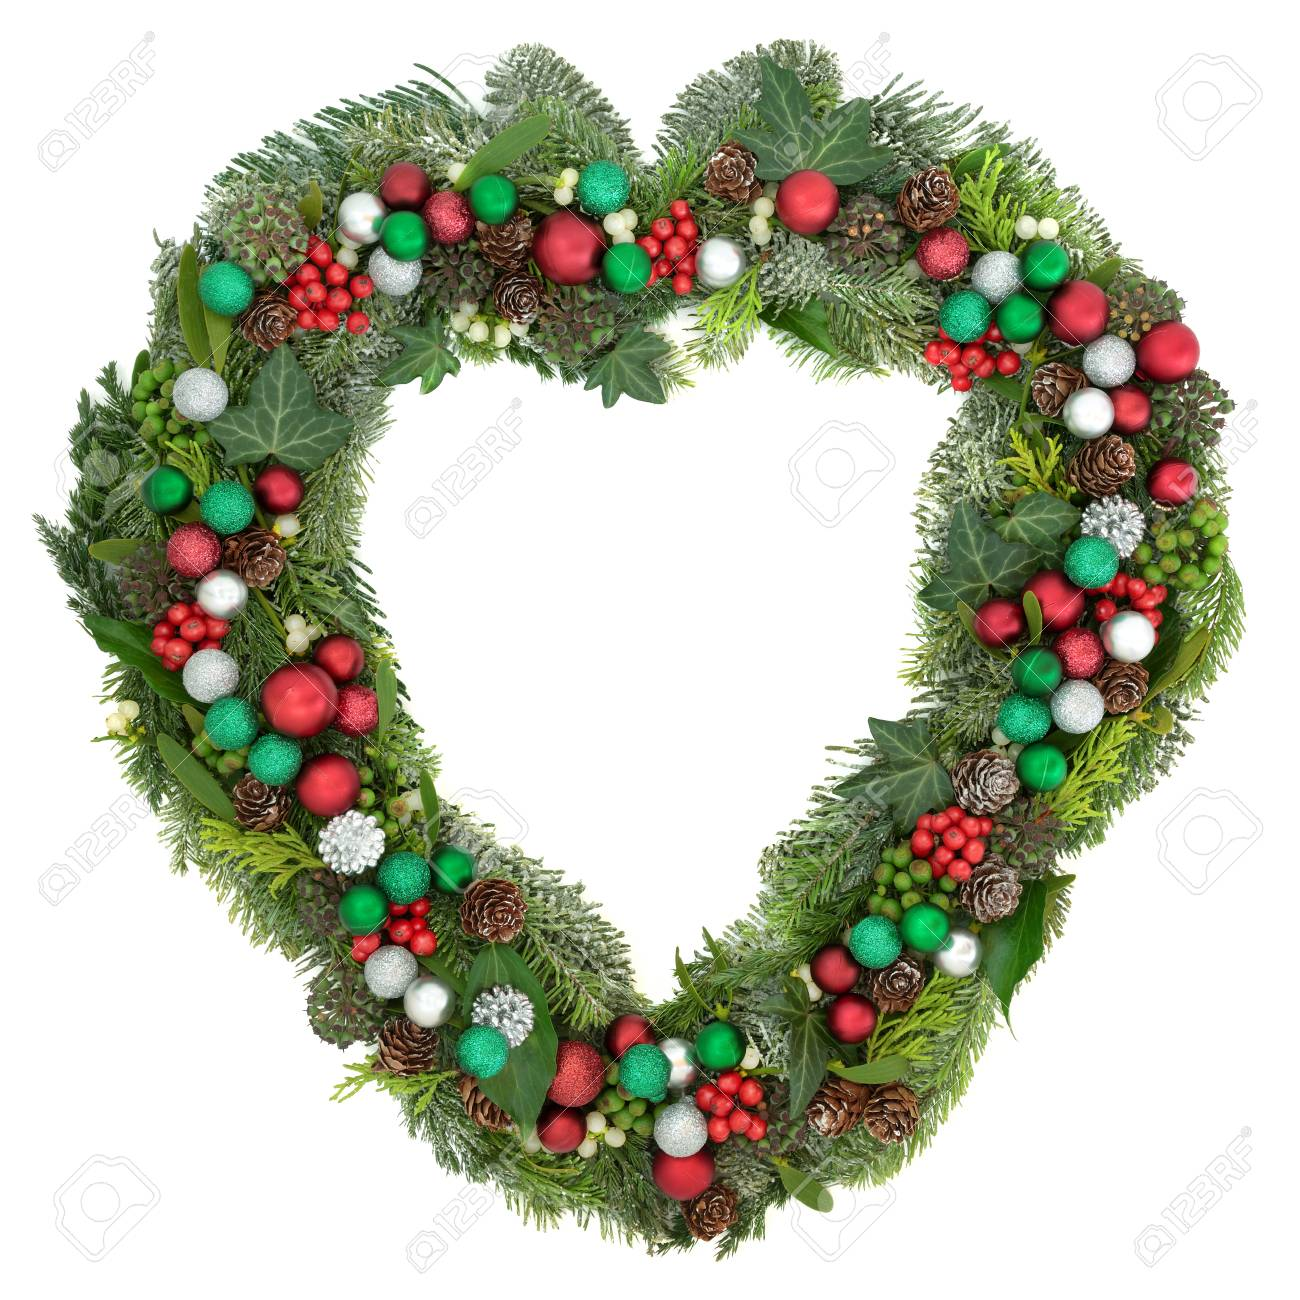 Christmas Heart Wreath.Christmas Heart Shaped Wreath Decoration With Red Green And